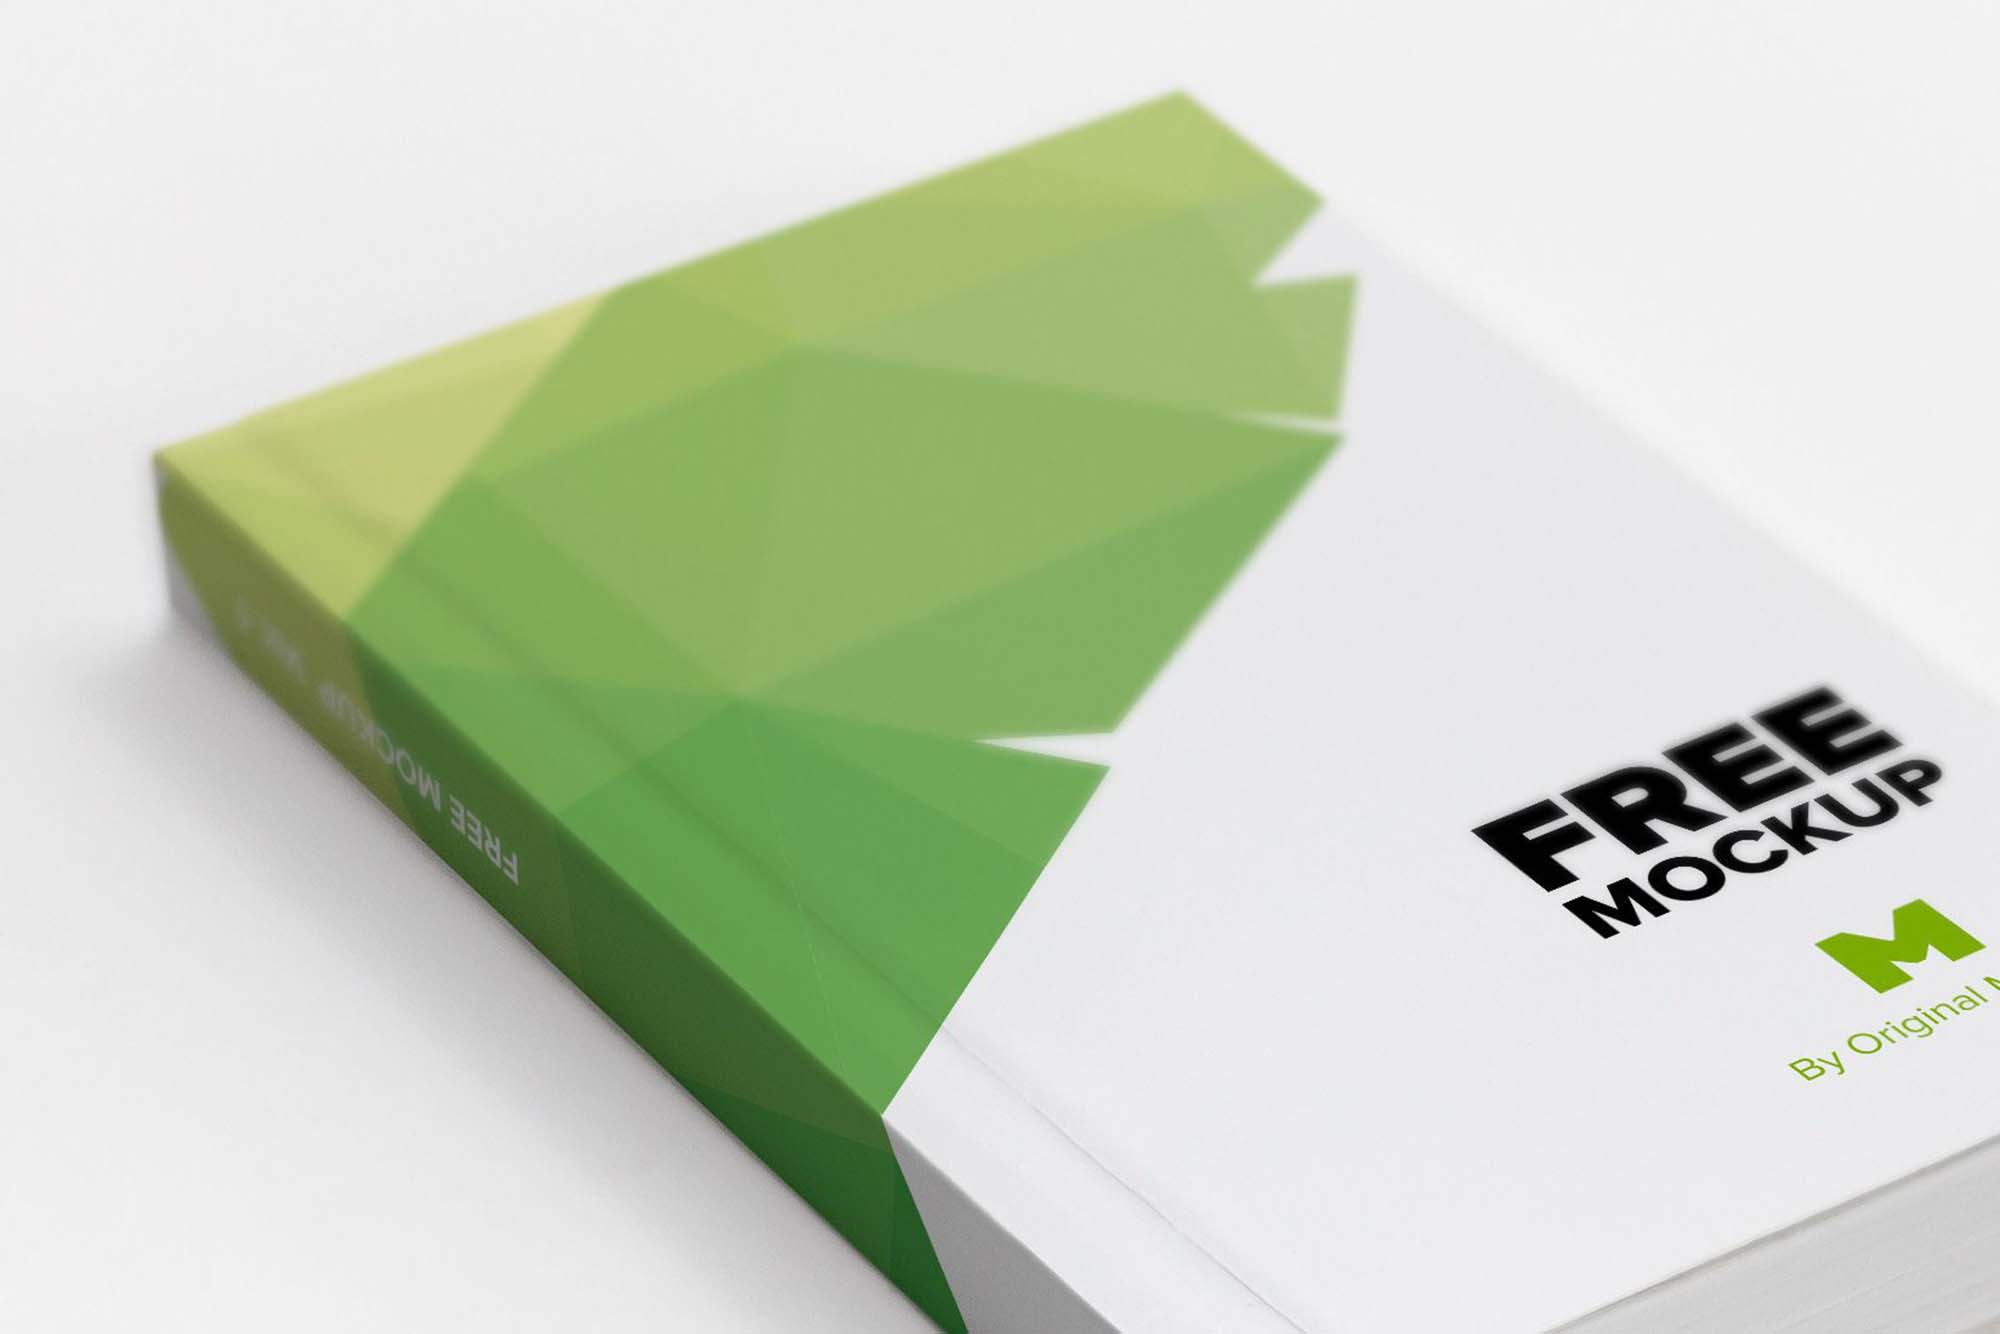 Softcover Trade Book Mockup